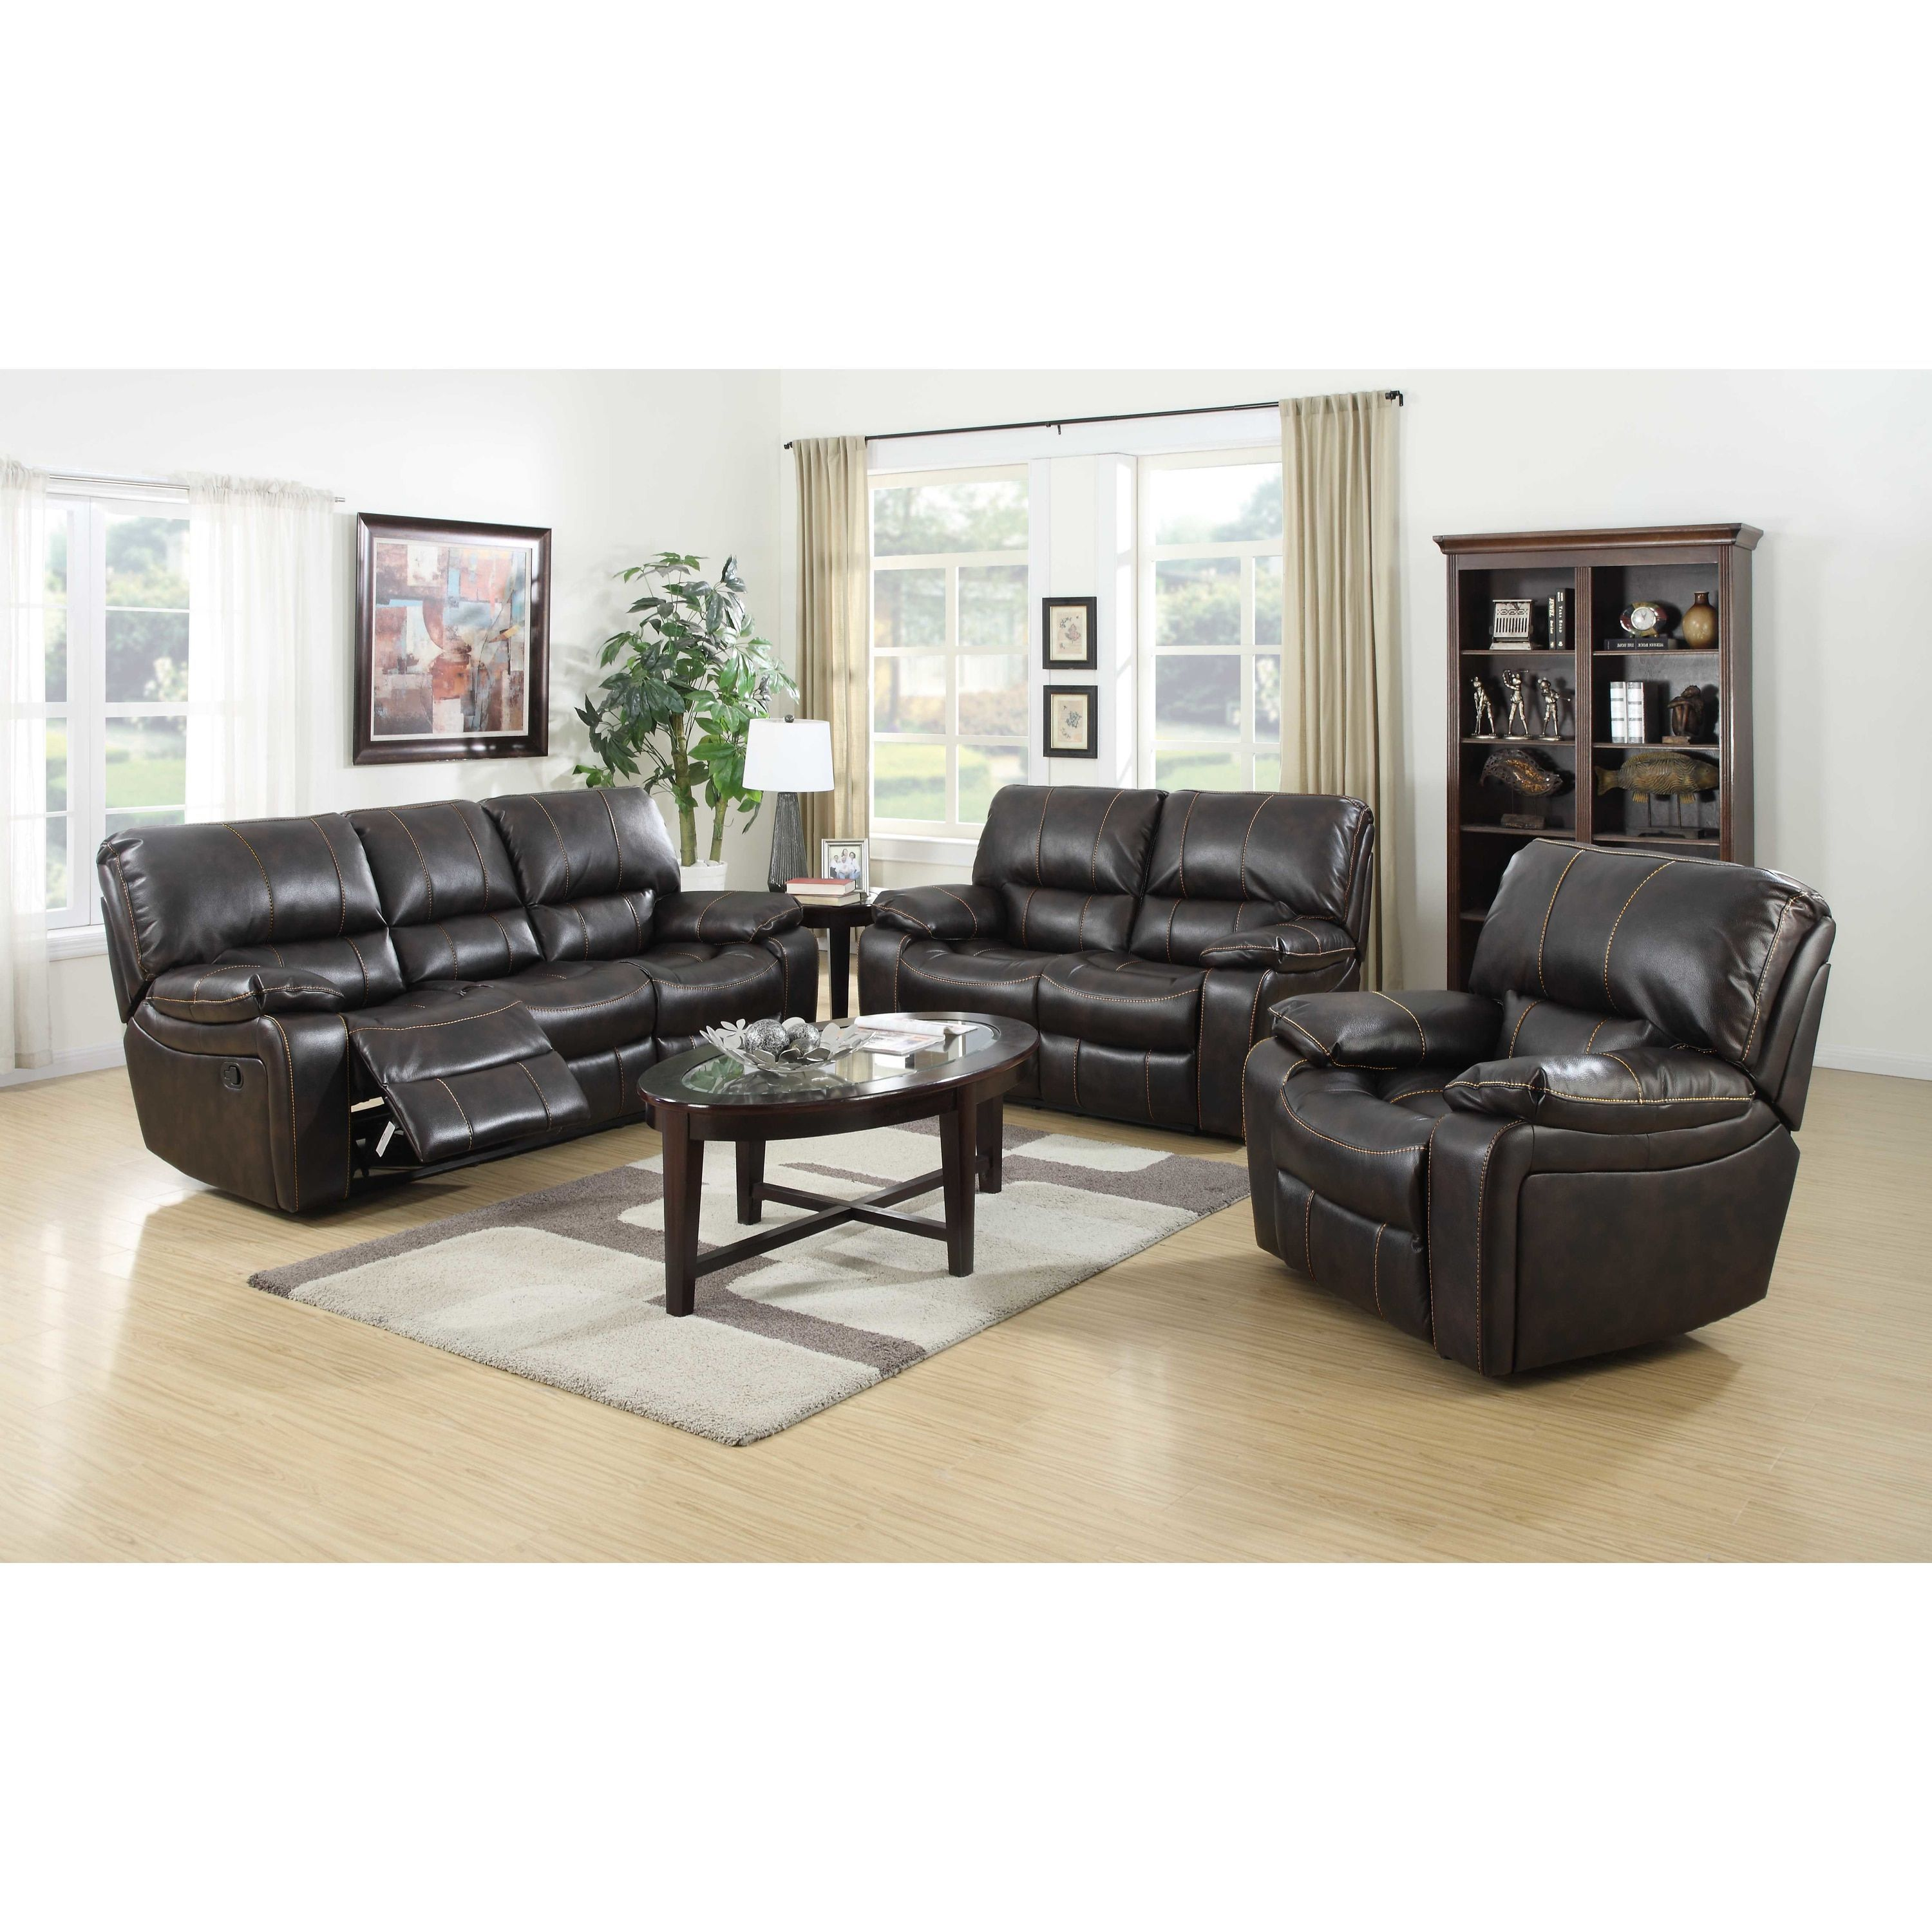 Online Shopping Bedding Furniture Electronics Jewelry Clothing More Living Room Sets Reclining Sofa Sofa Set